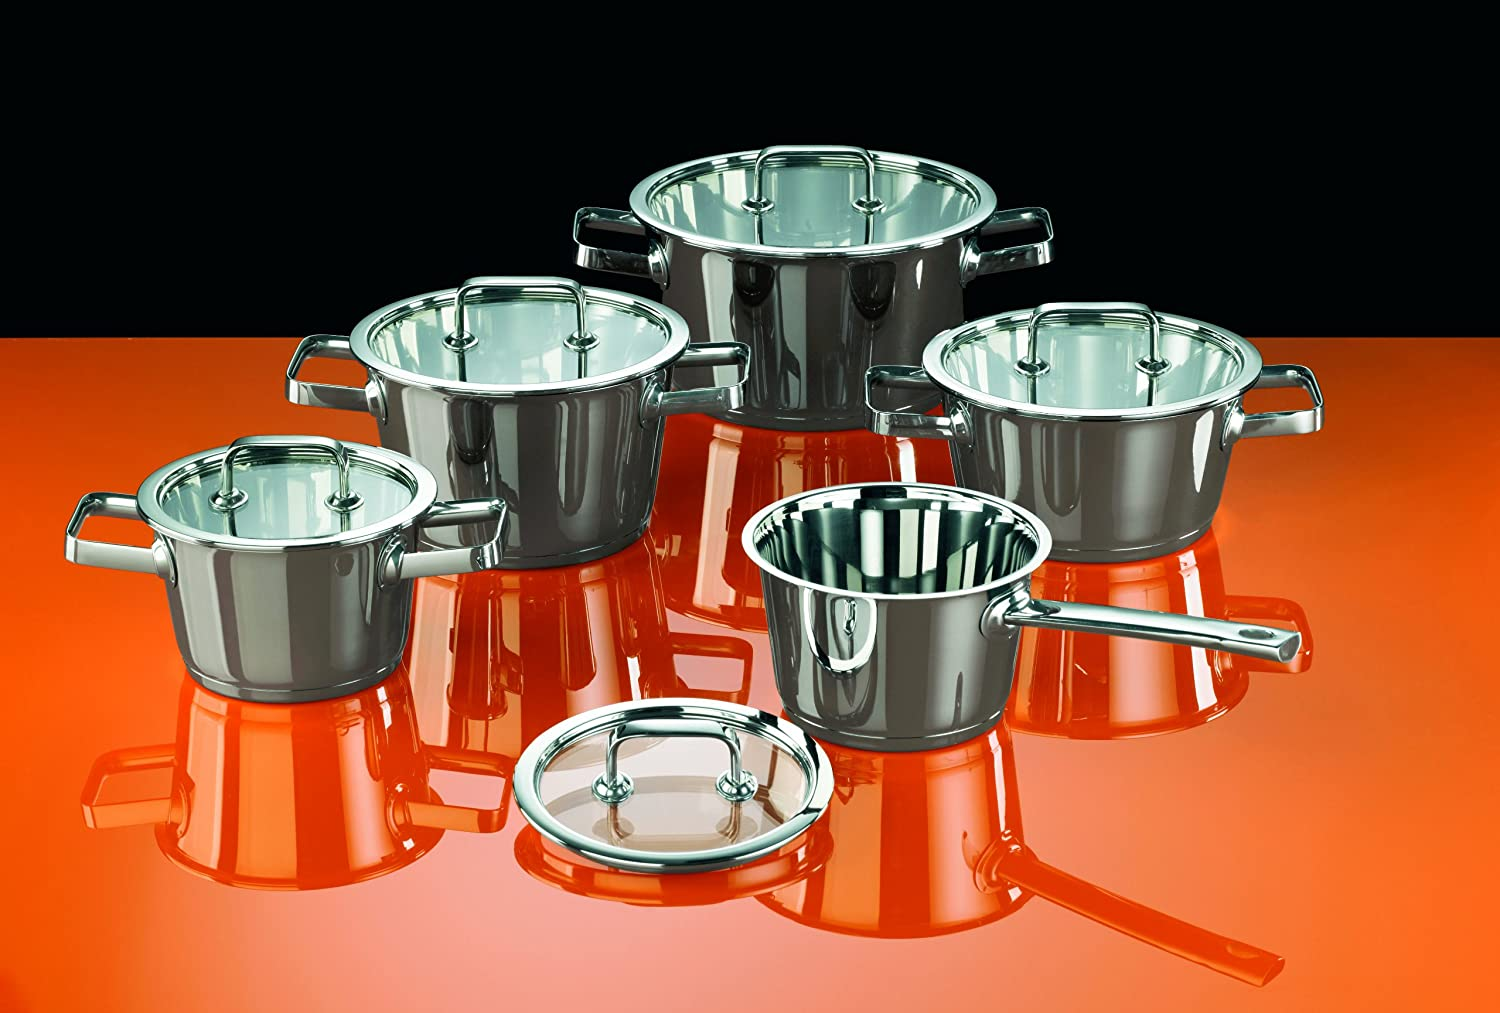 Amazon.com: CULINARIASET 5TL G. CONIA 261151-05: Home & Kitchen